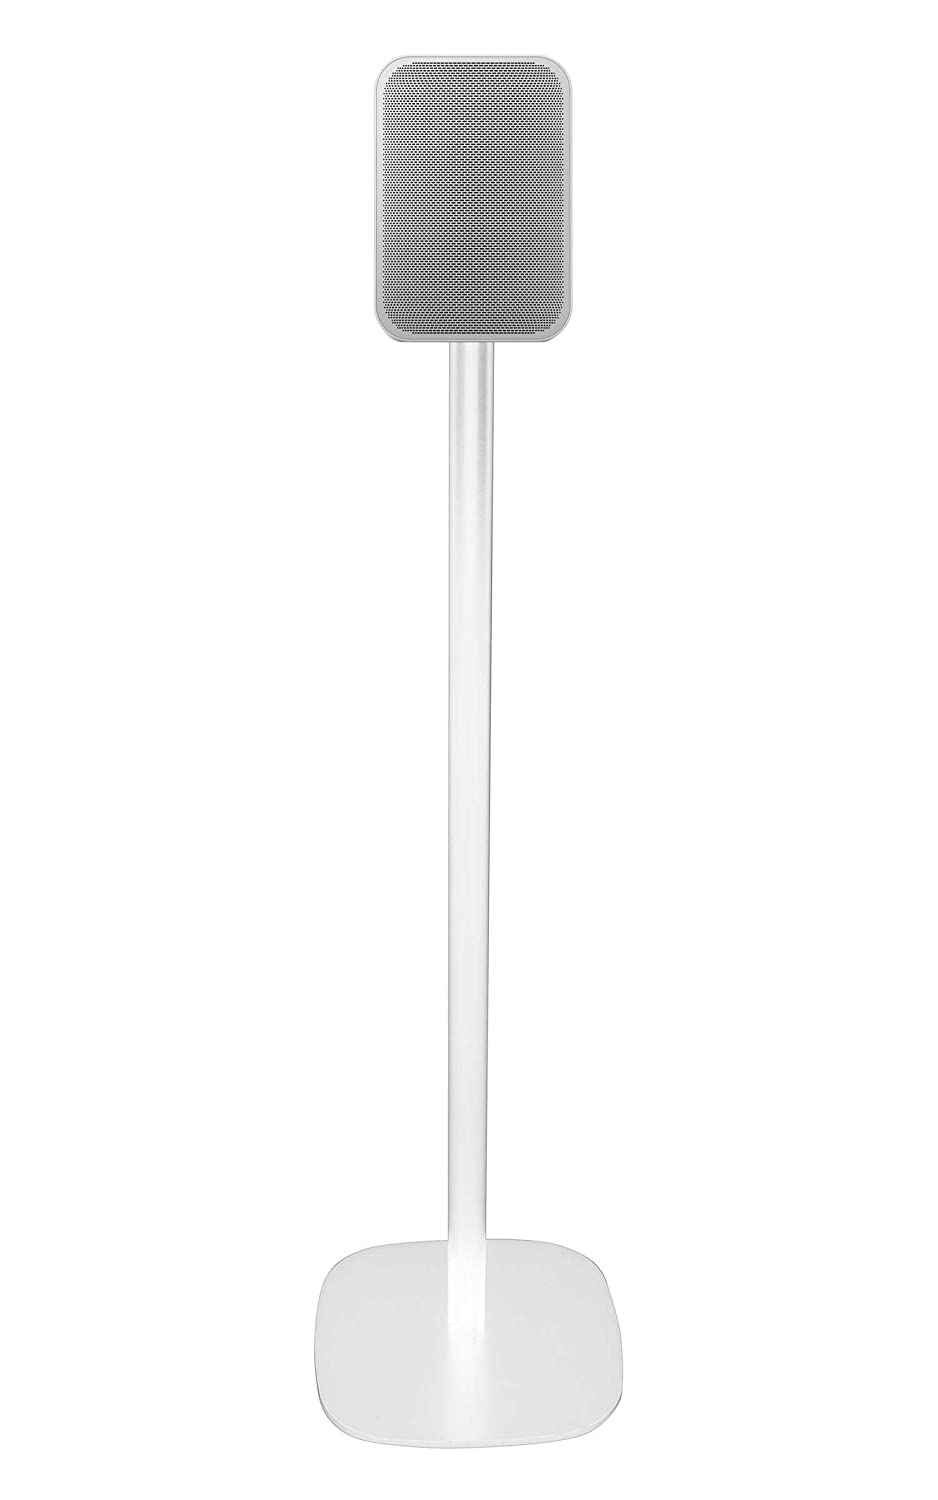 Vebos floor stand Bluesound Pulse Flex white en optimal experience in every room - Allows you to place your Bluesound Pulse Flex exactly where you want it - Two years warranty